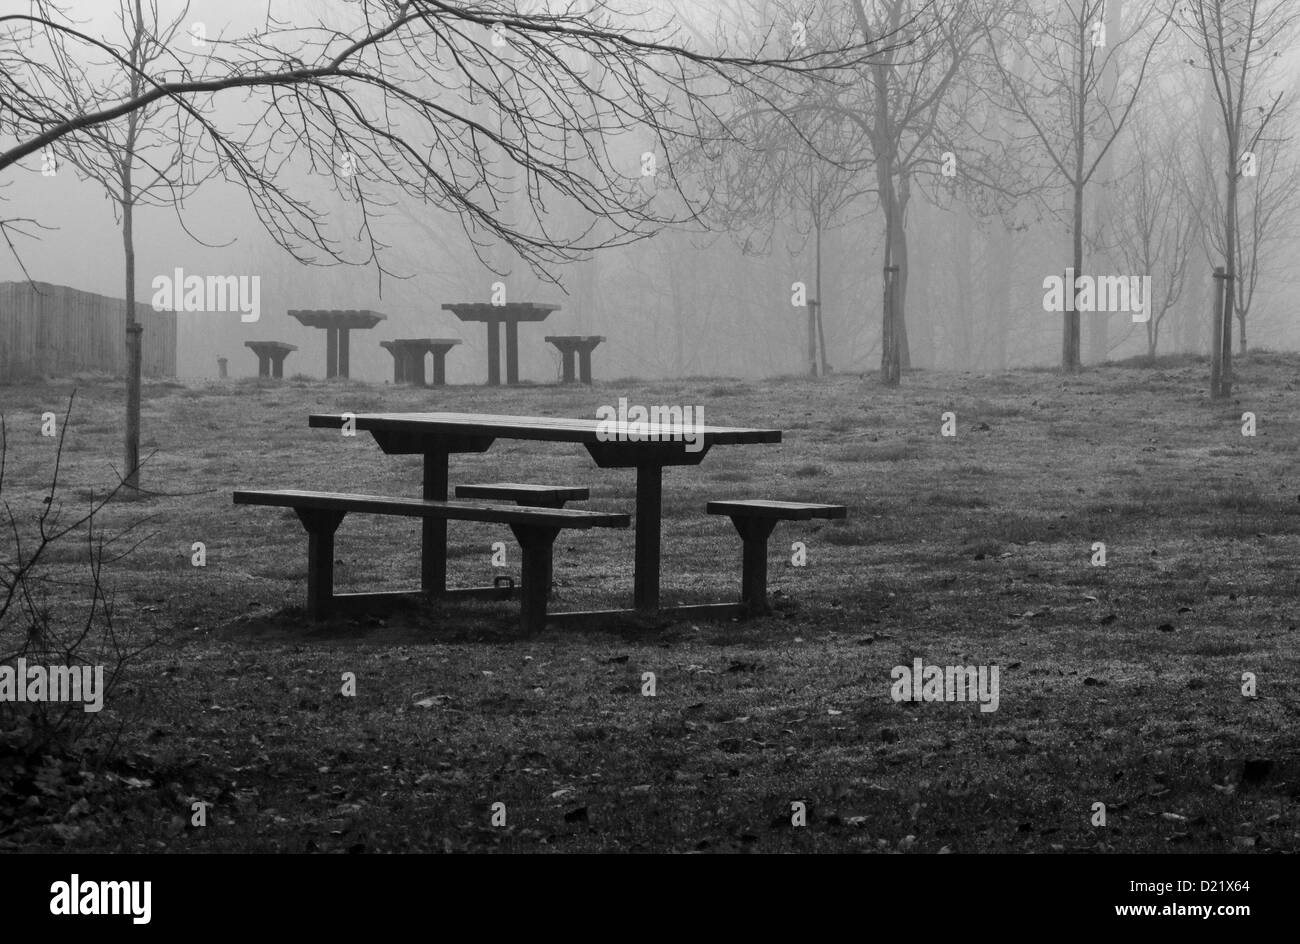 Picnic tables stand deserted in a wintry. foggy, park. Resembling ancient standing stones, the tables have no cust - Stock Image